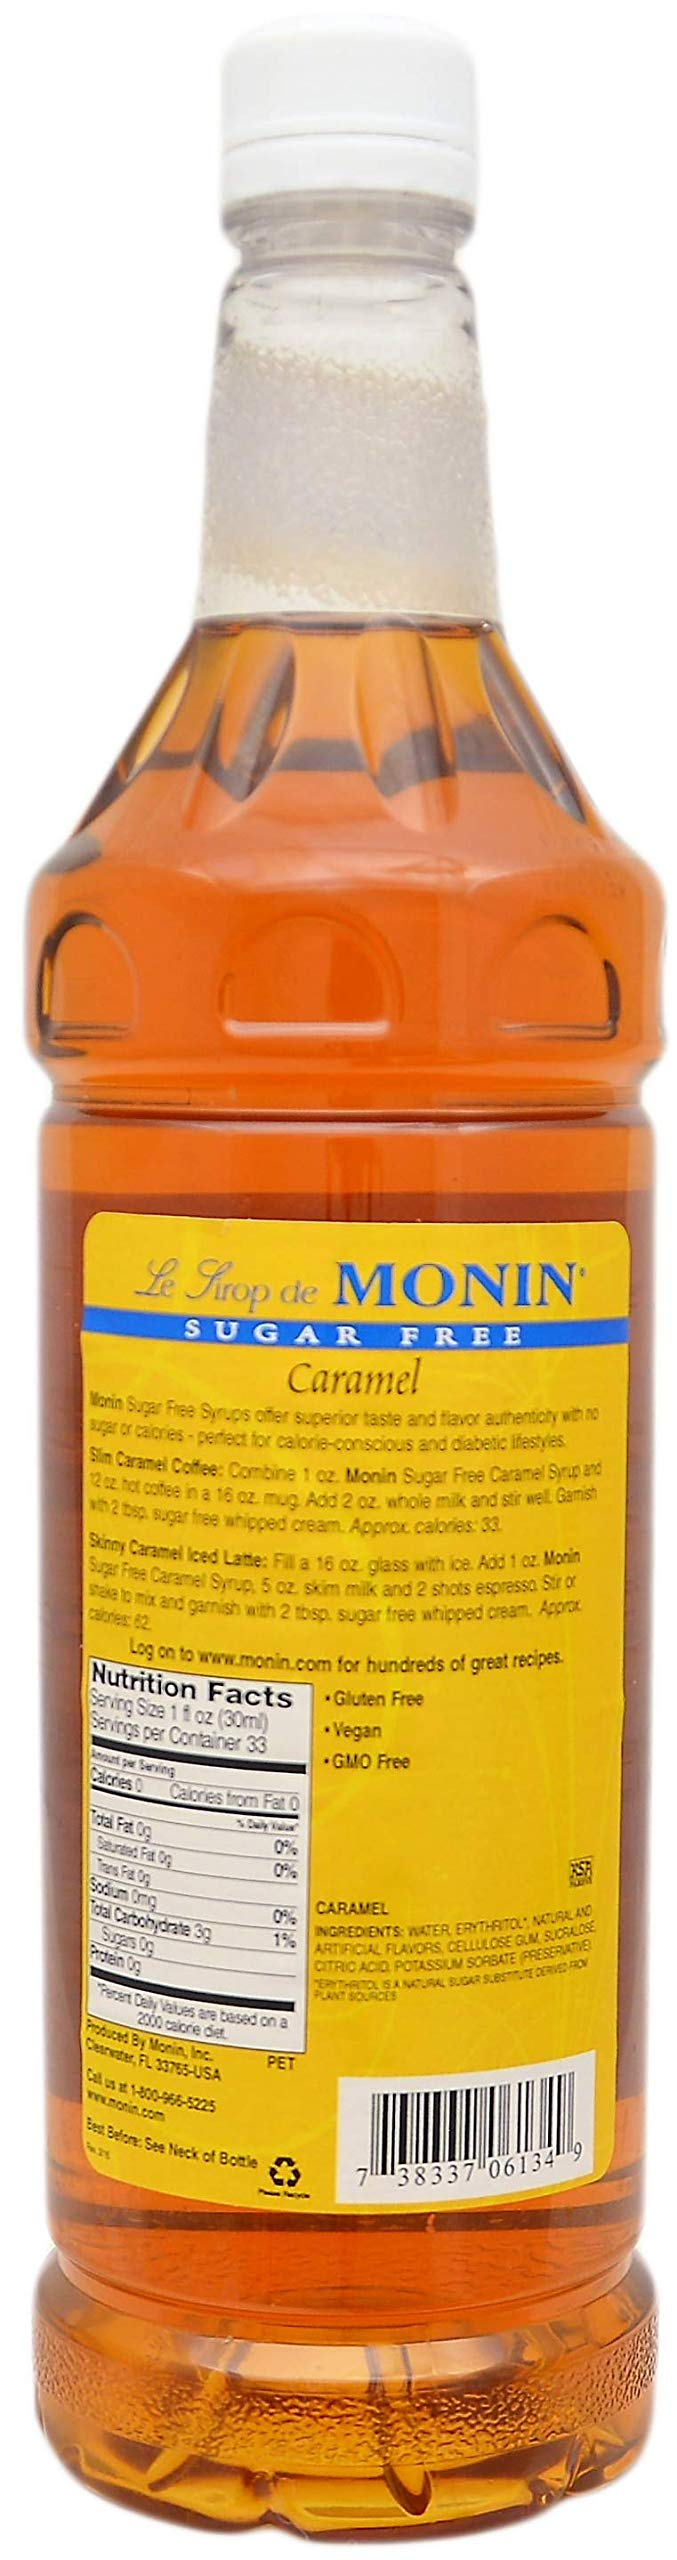 By The Cup Pump and Syrup Combo - Monin Sugar-Free Vanilla and Sugar-Free Caramel Syrup - 1 Liter Bottles with 2 Pumps by By The Cup (Image #3)